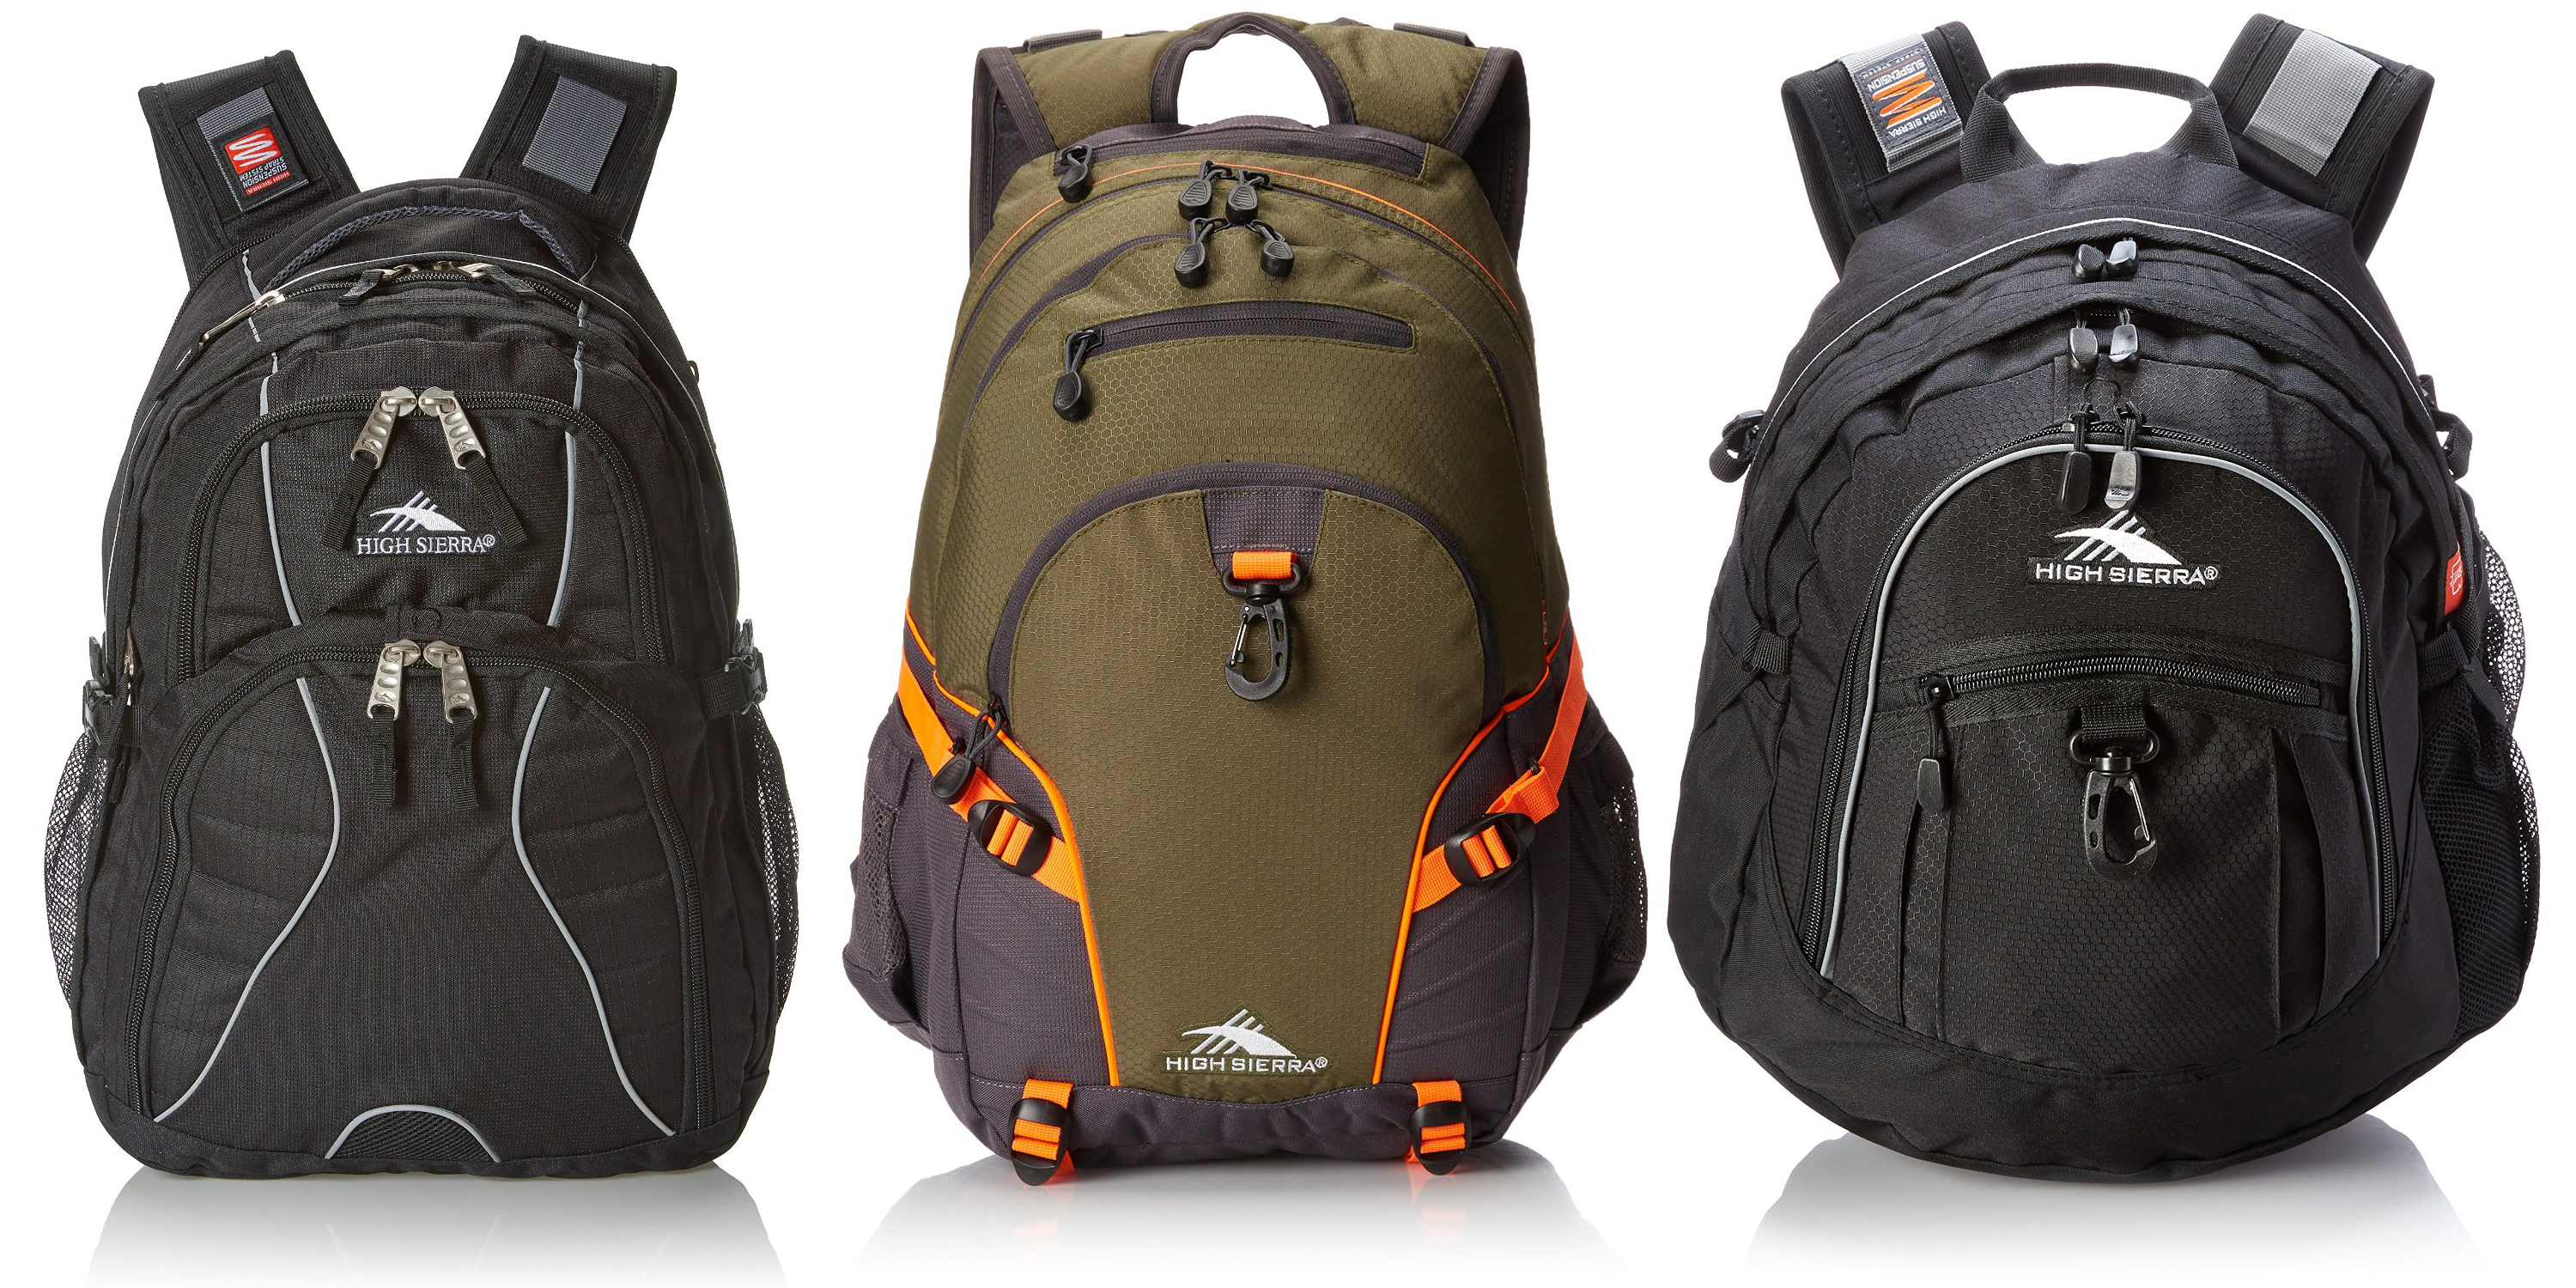 9cc80cdbf2 Amazon Gold Box - up to 50% off High Sierra backpacks starting under  20  Prime shipped